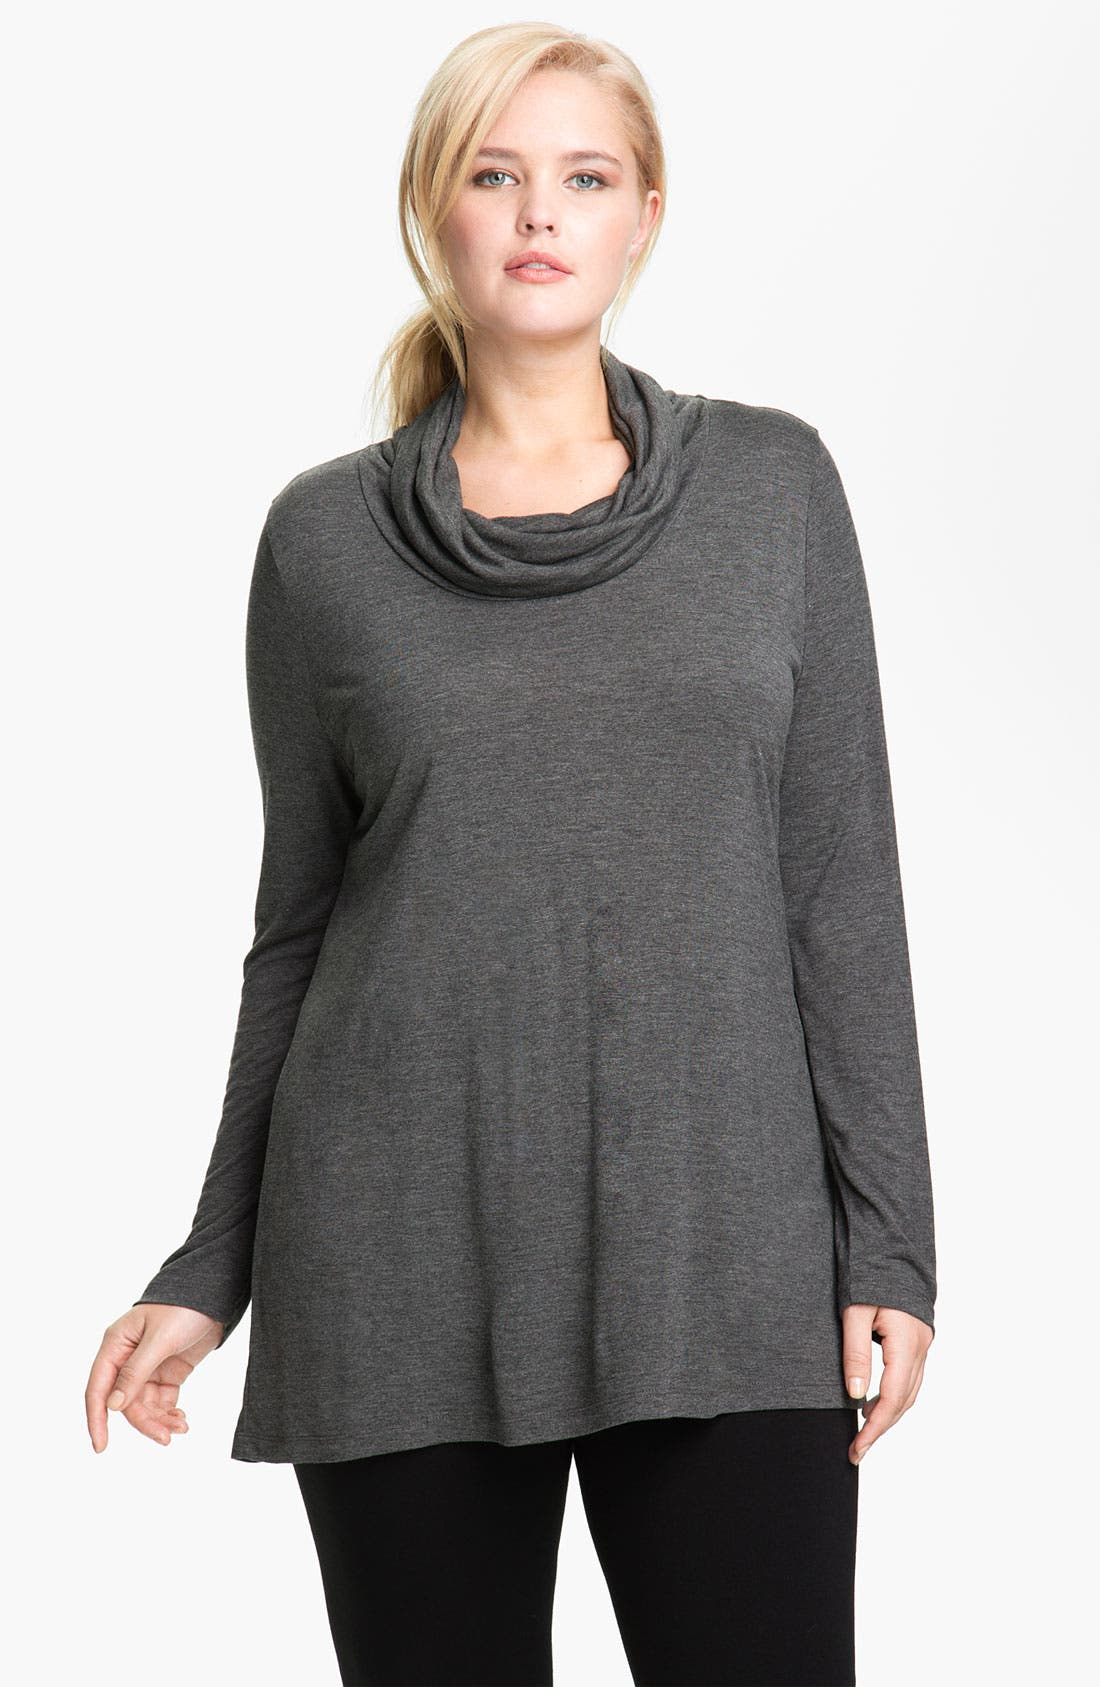 Alternate Image 1 Selected - Kische Cowled Turtleneck Top (Plus)